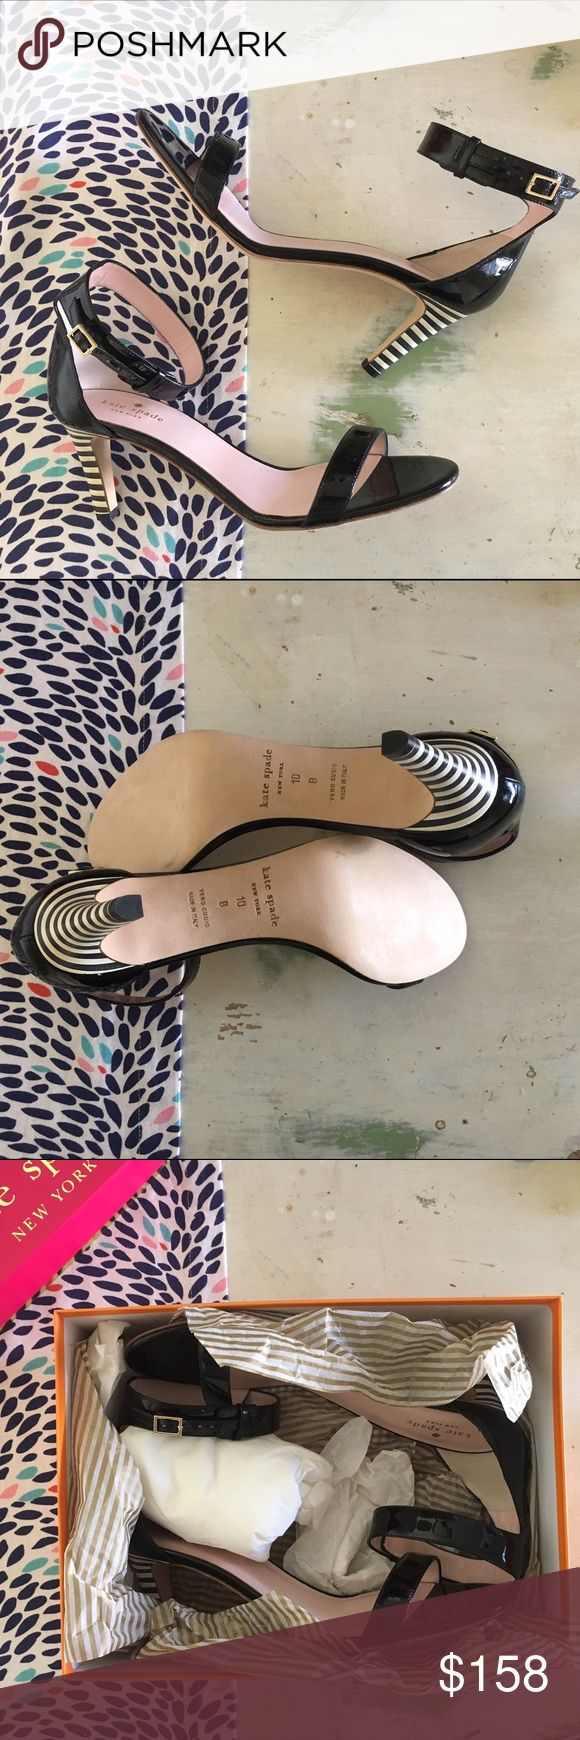 """PARTY PRICE🎉KATE SPADE•""""Elsa"""" Striped Heel Sandal Absolutely darling for spring (and the rest of the year!) Includes dust bag & box. 💕 kate spade Shoes Sandals"""